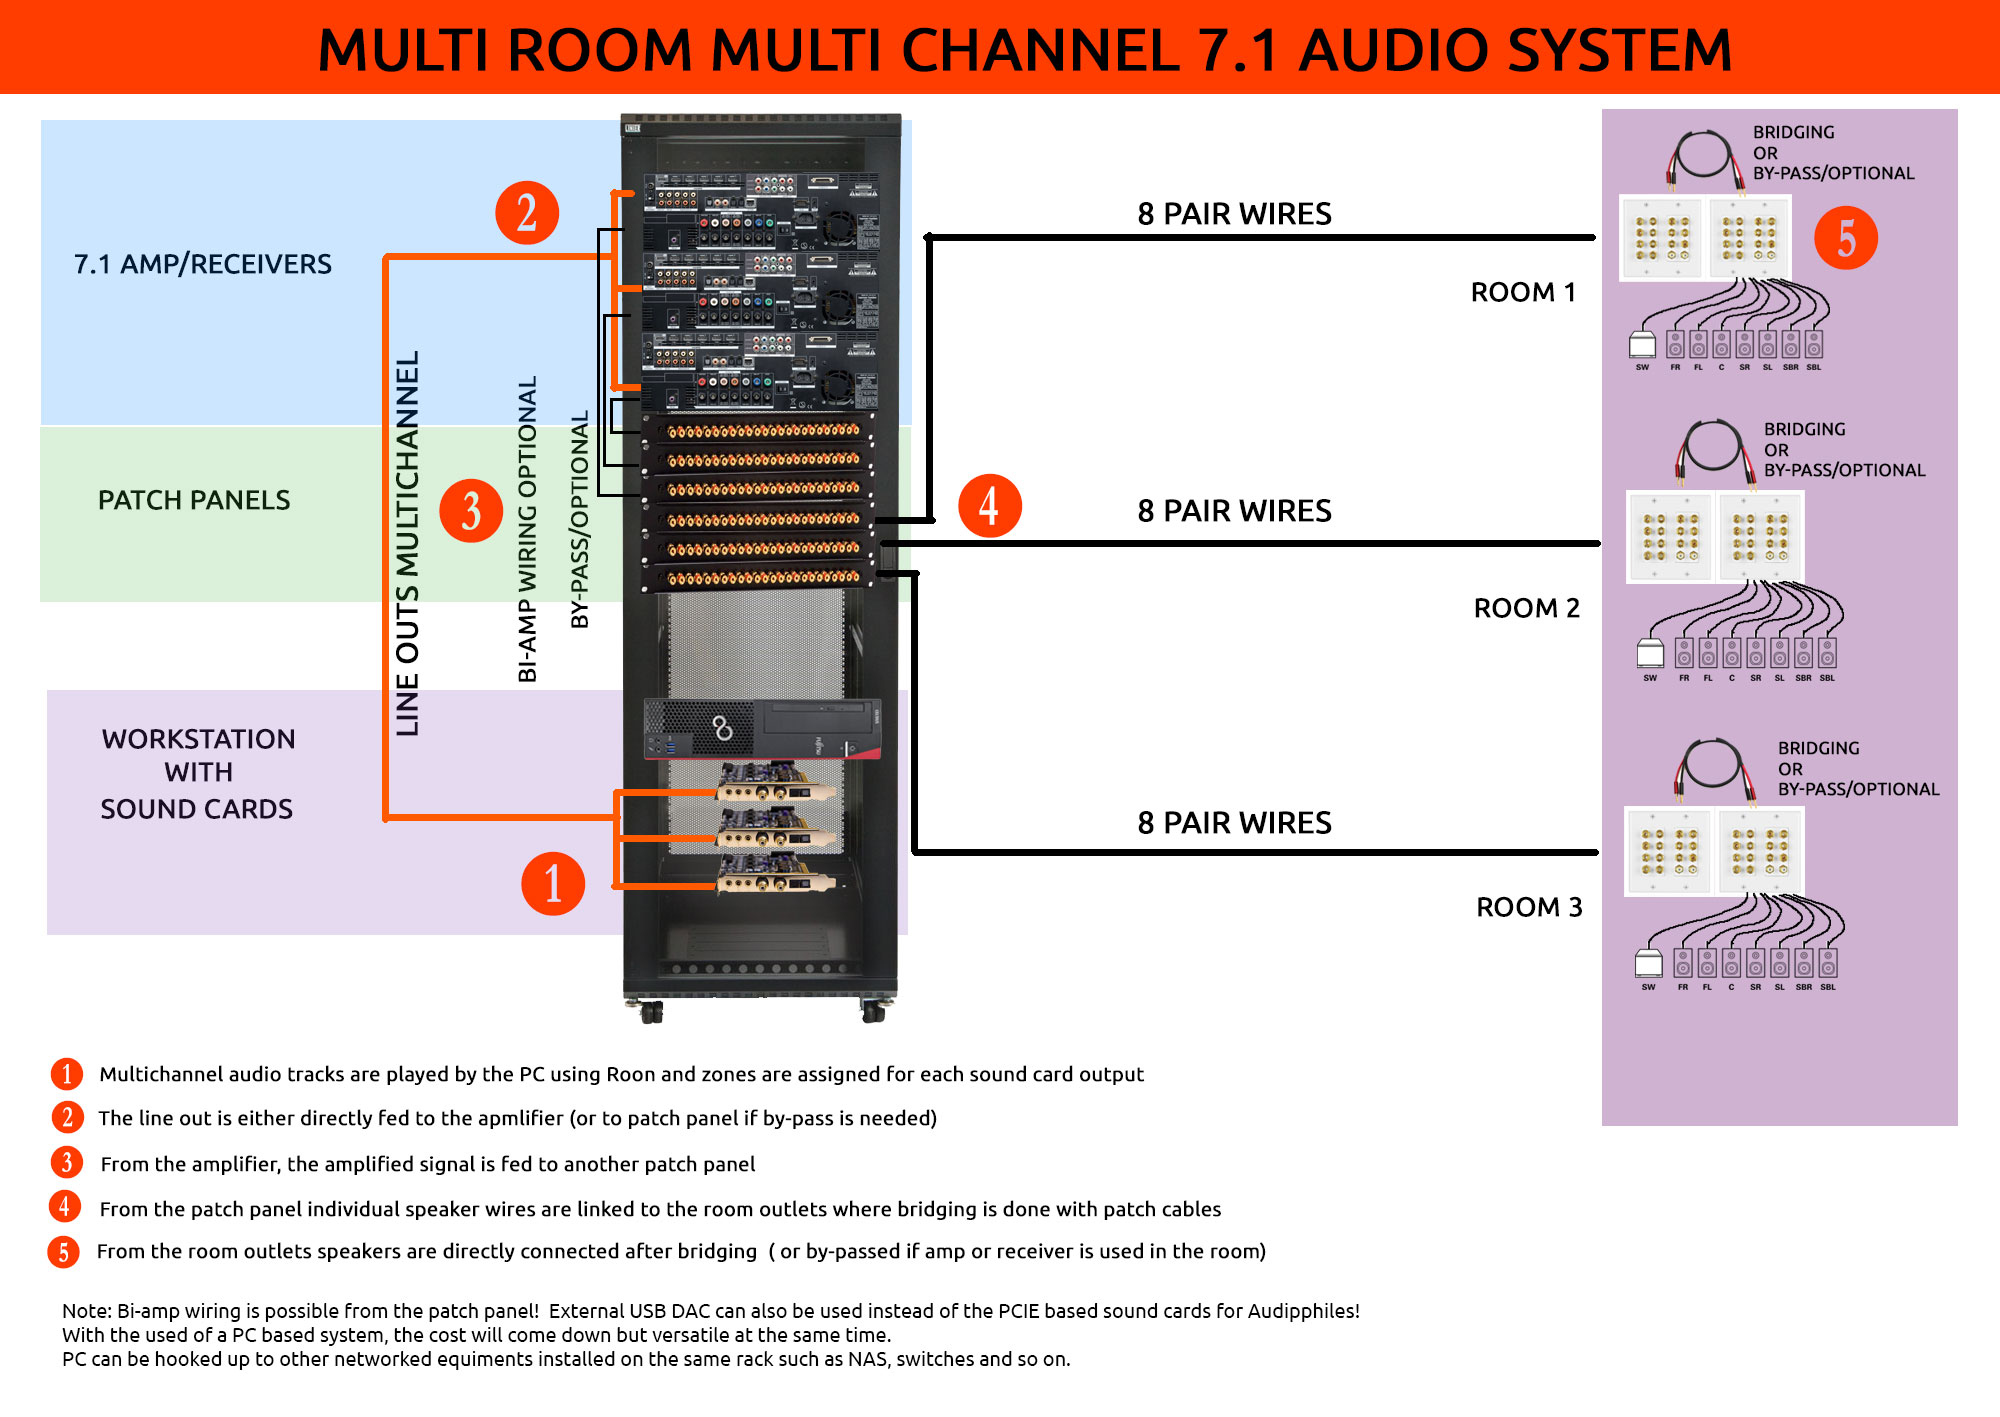 Multi Room Channel Audio Using Multiple Sound Cards For My New Bridged Wiring An Amp Wiring2000x1417 378 Kb